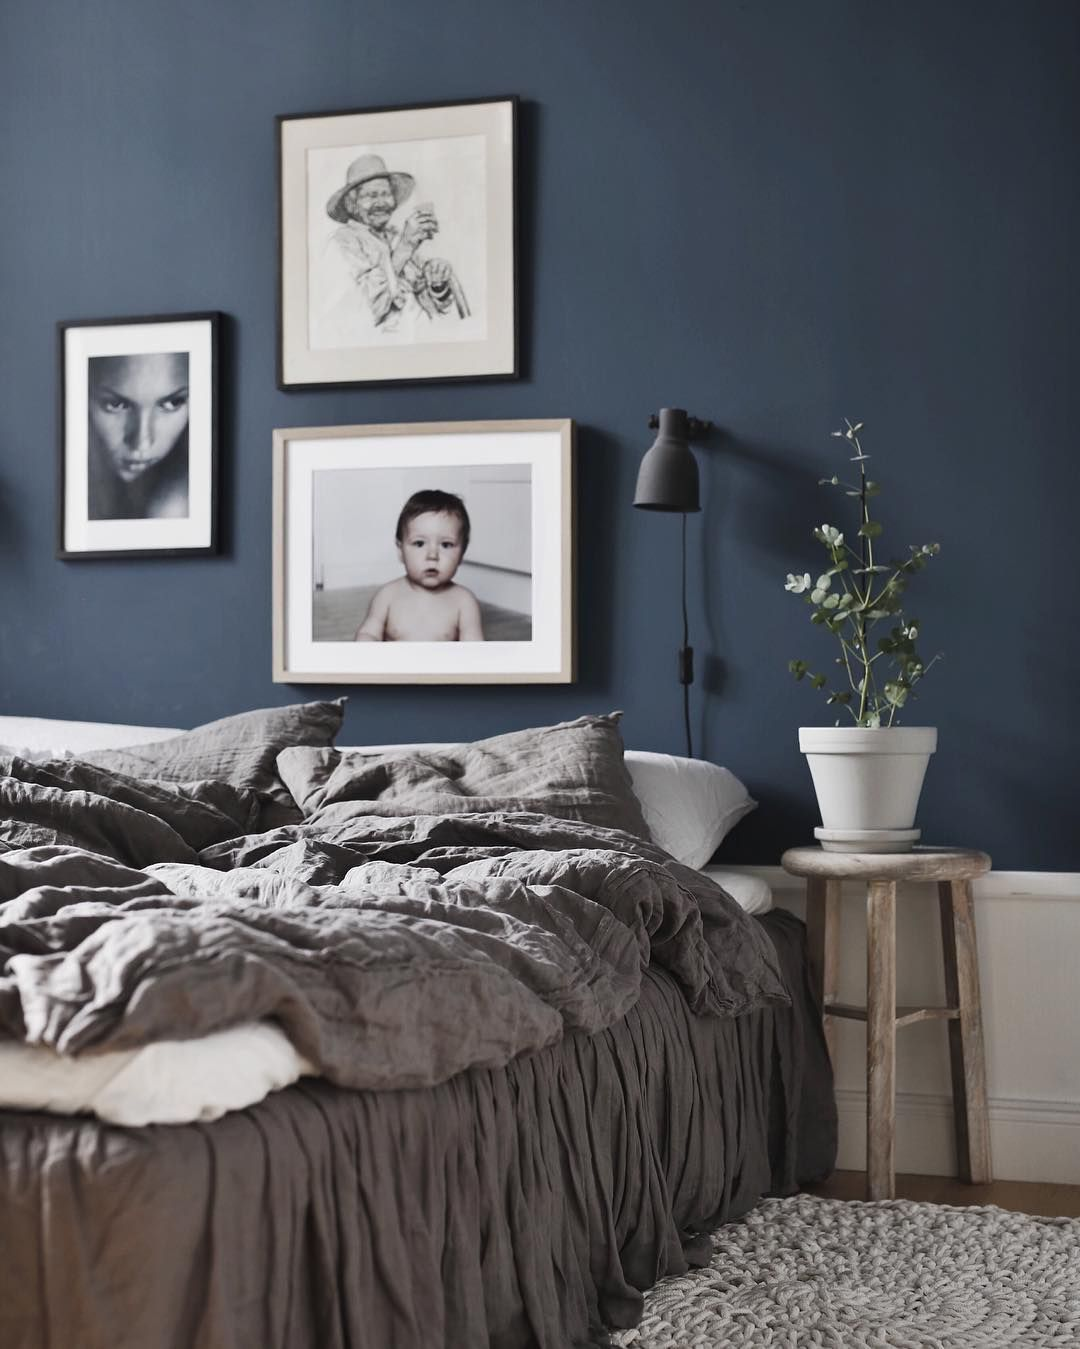 Rooms With Medium Blue Accent Wall: Beautiful Bedroom By Jasmina Bylund.